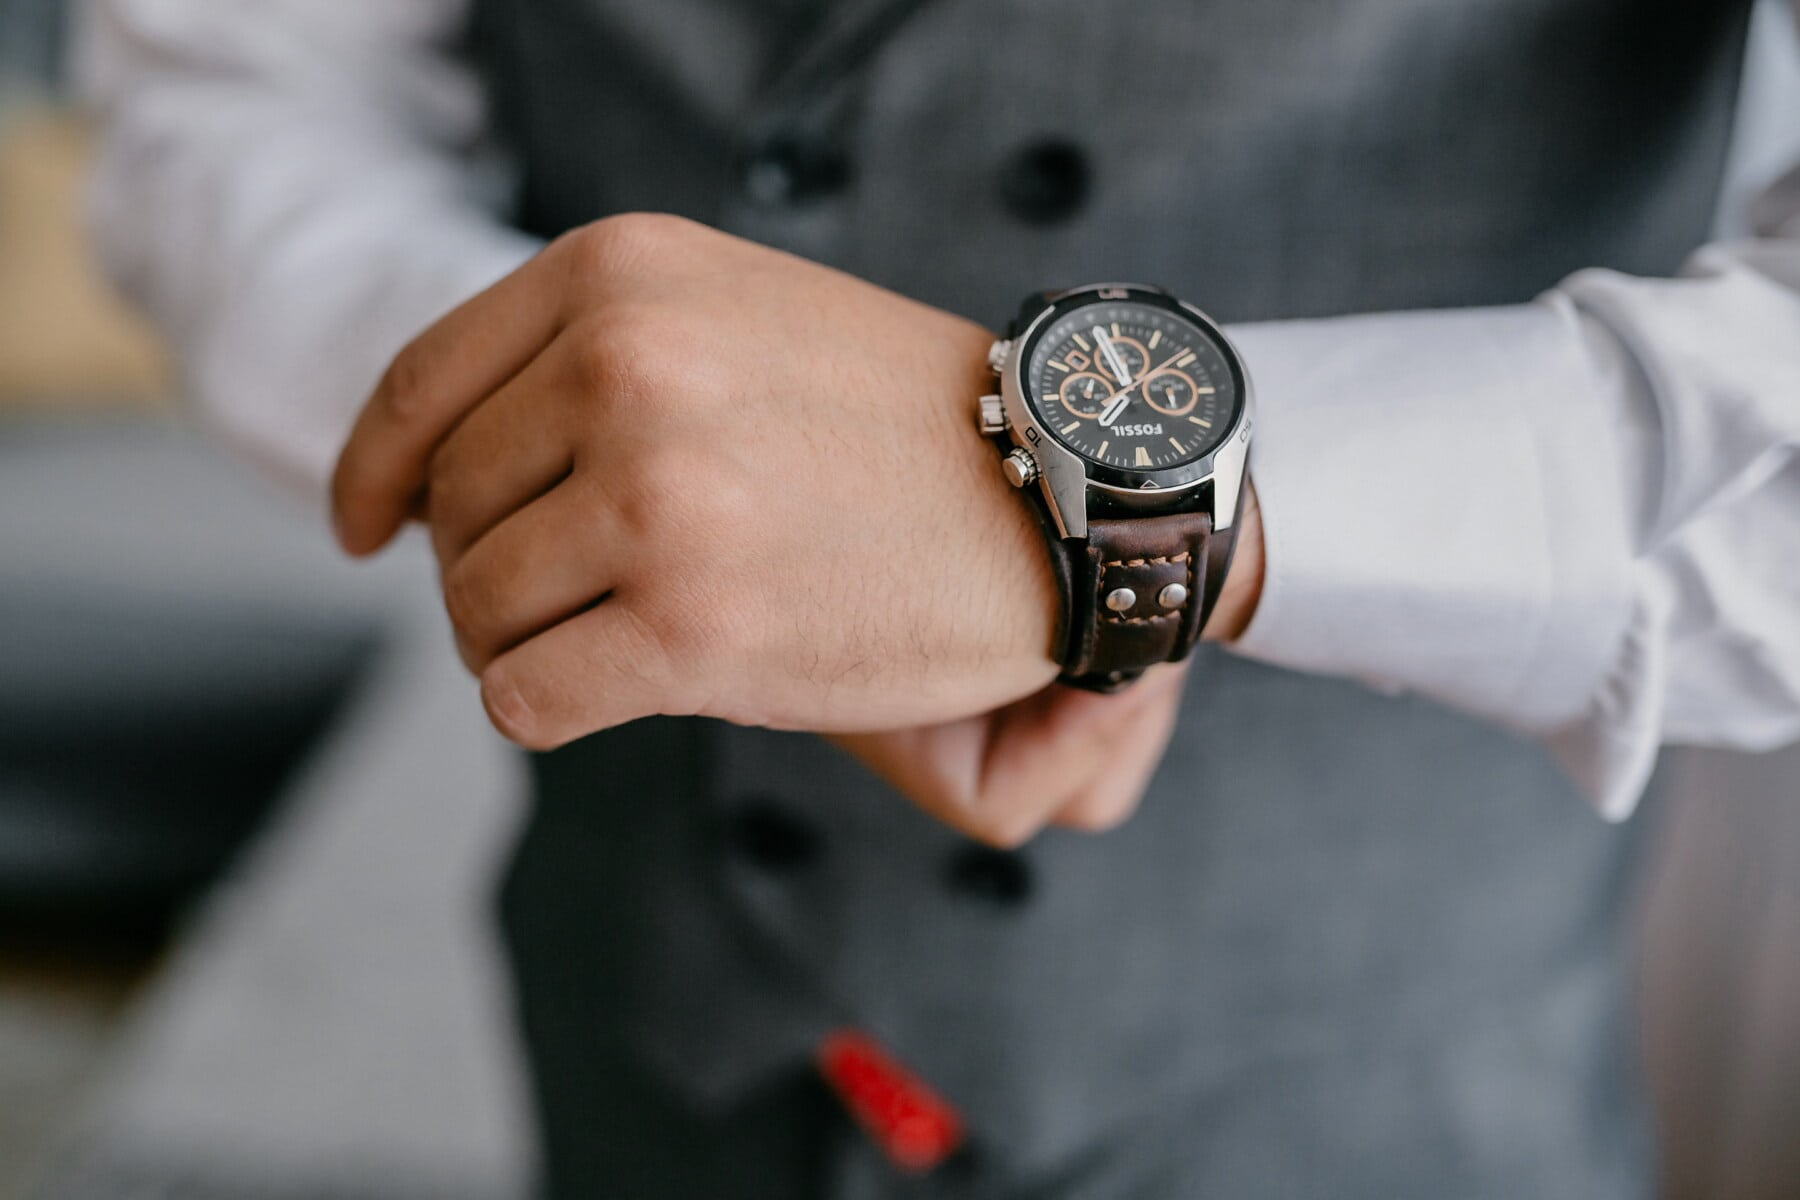 wristwatch, fancy, expensive, man, manager, tuxedo suit, timepiece, hand, time, people